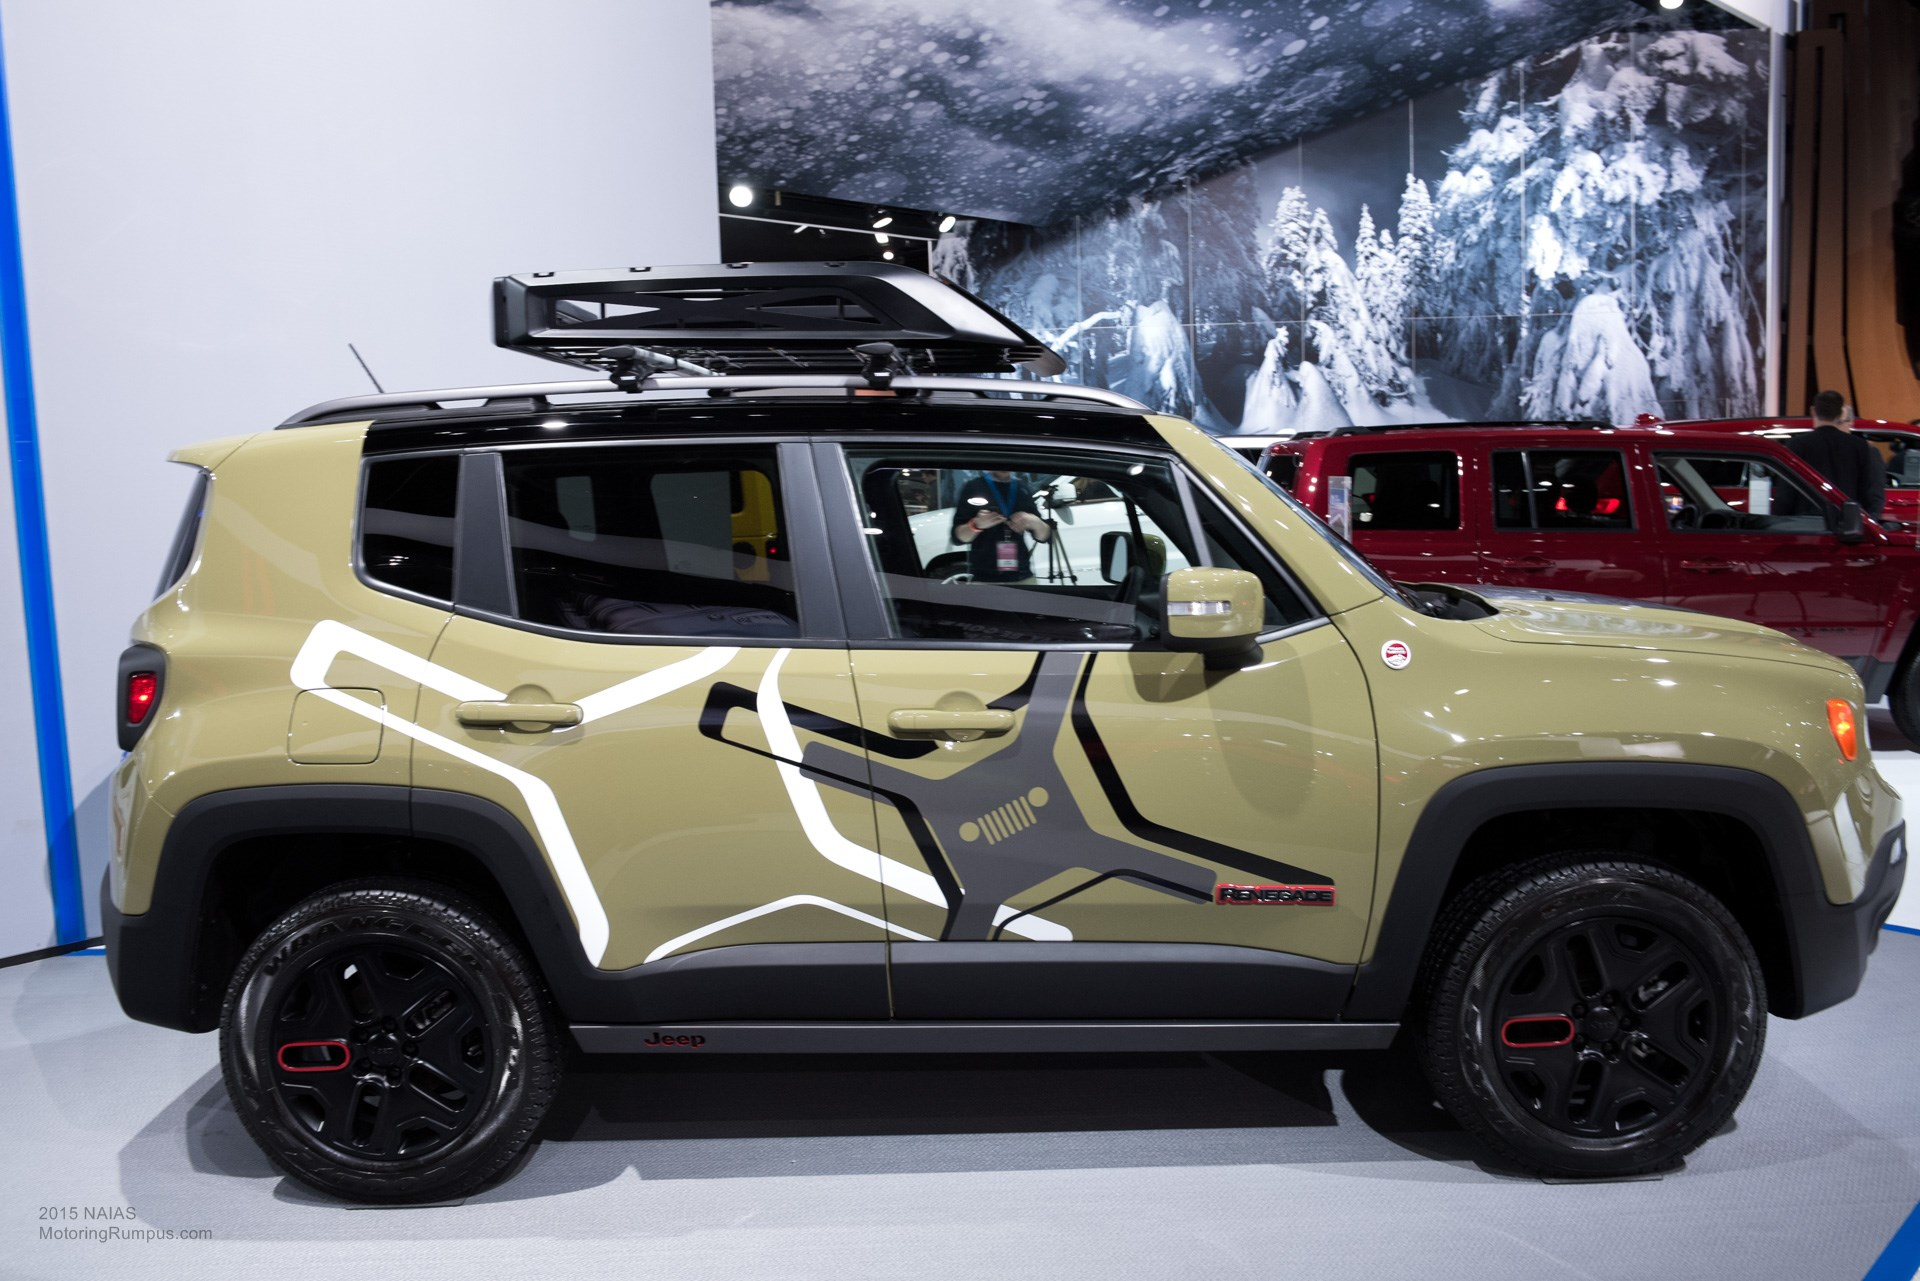 2015 Naias Jeep Off Road Mopar Equipped Renegade